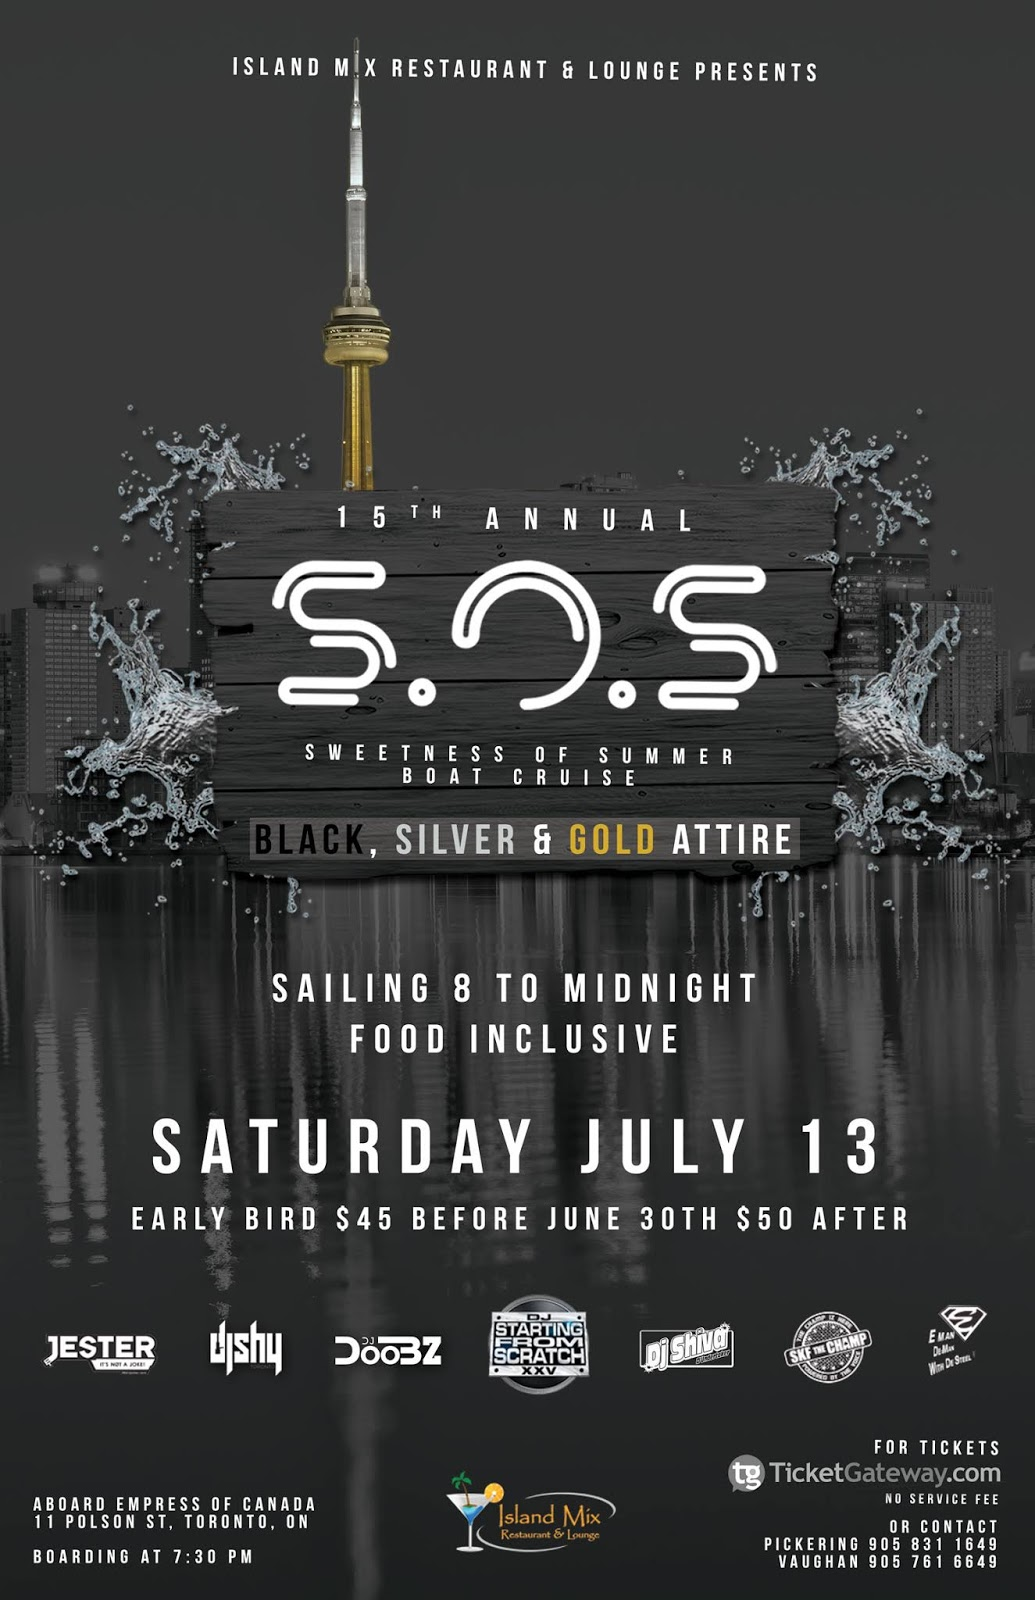 C A  Confidential: SOS Sweetness of Summer 15th Annual Boat Cruise